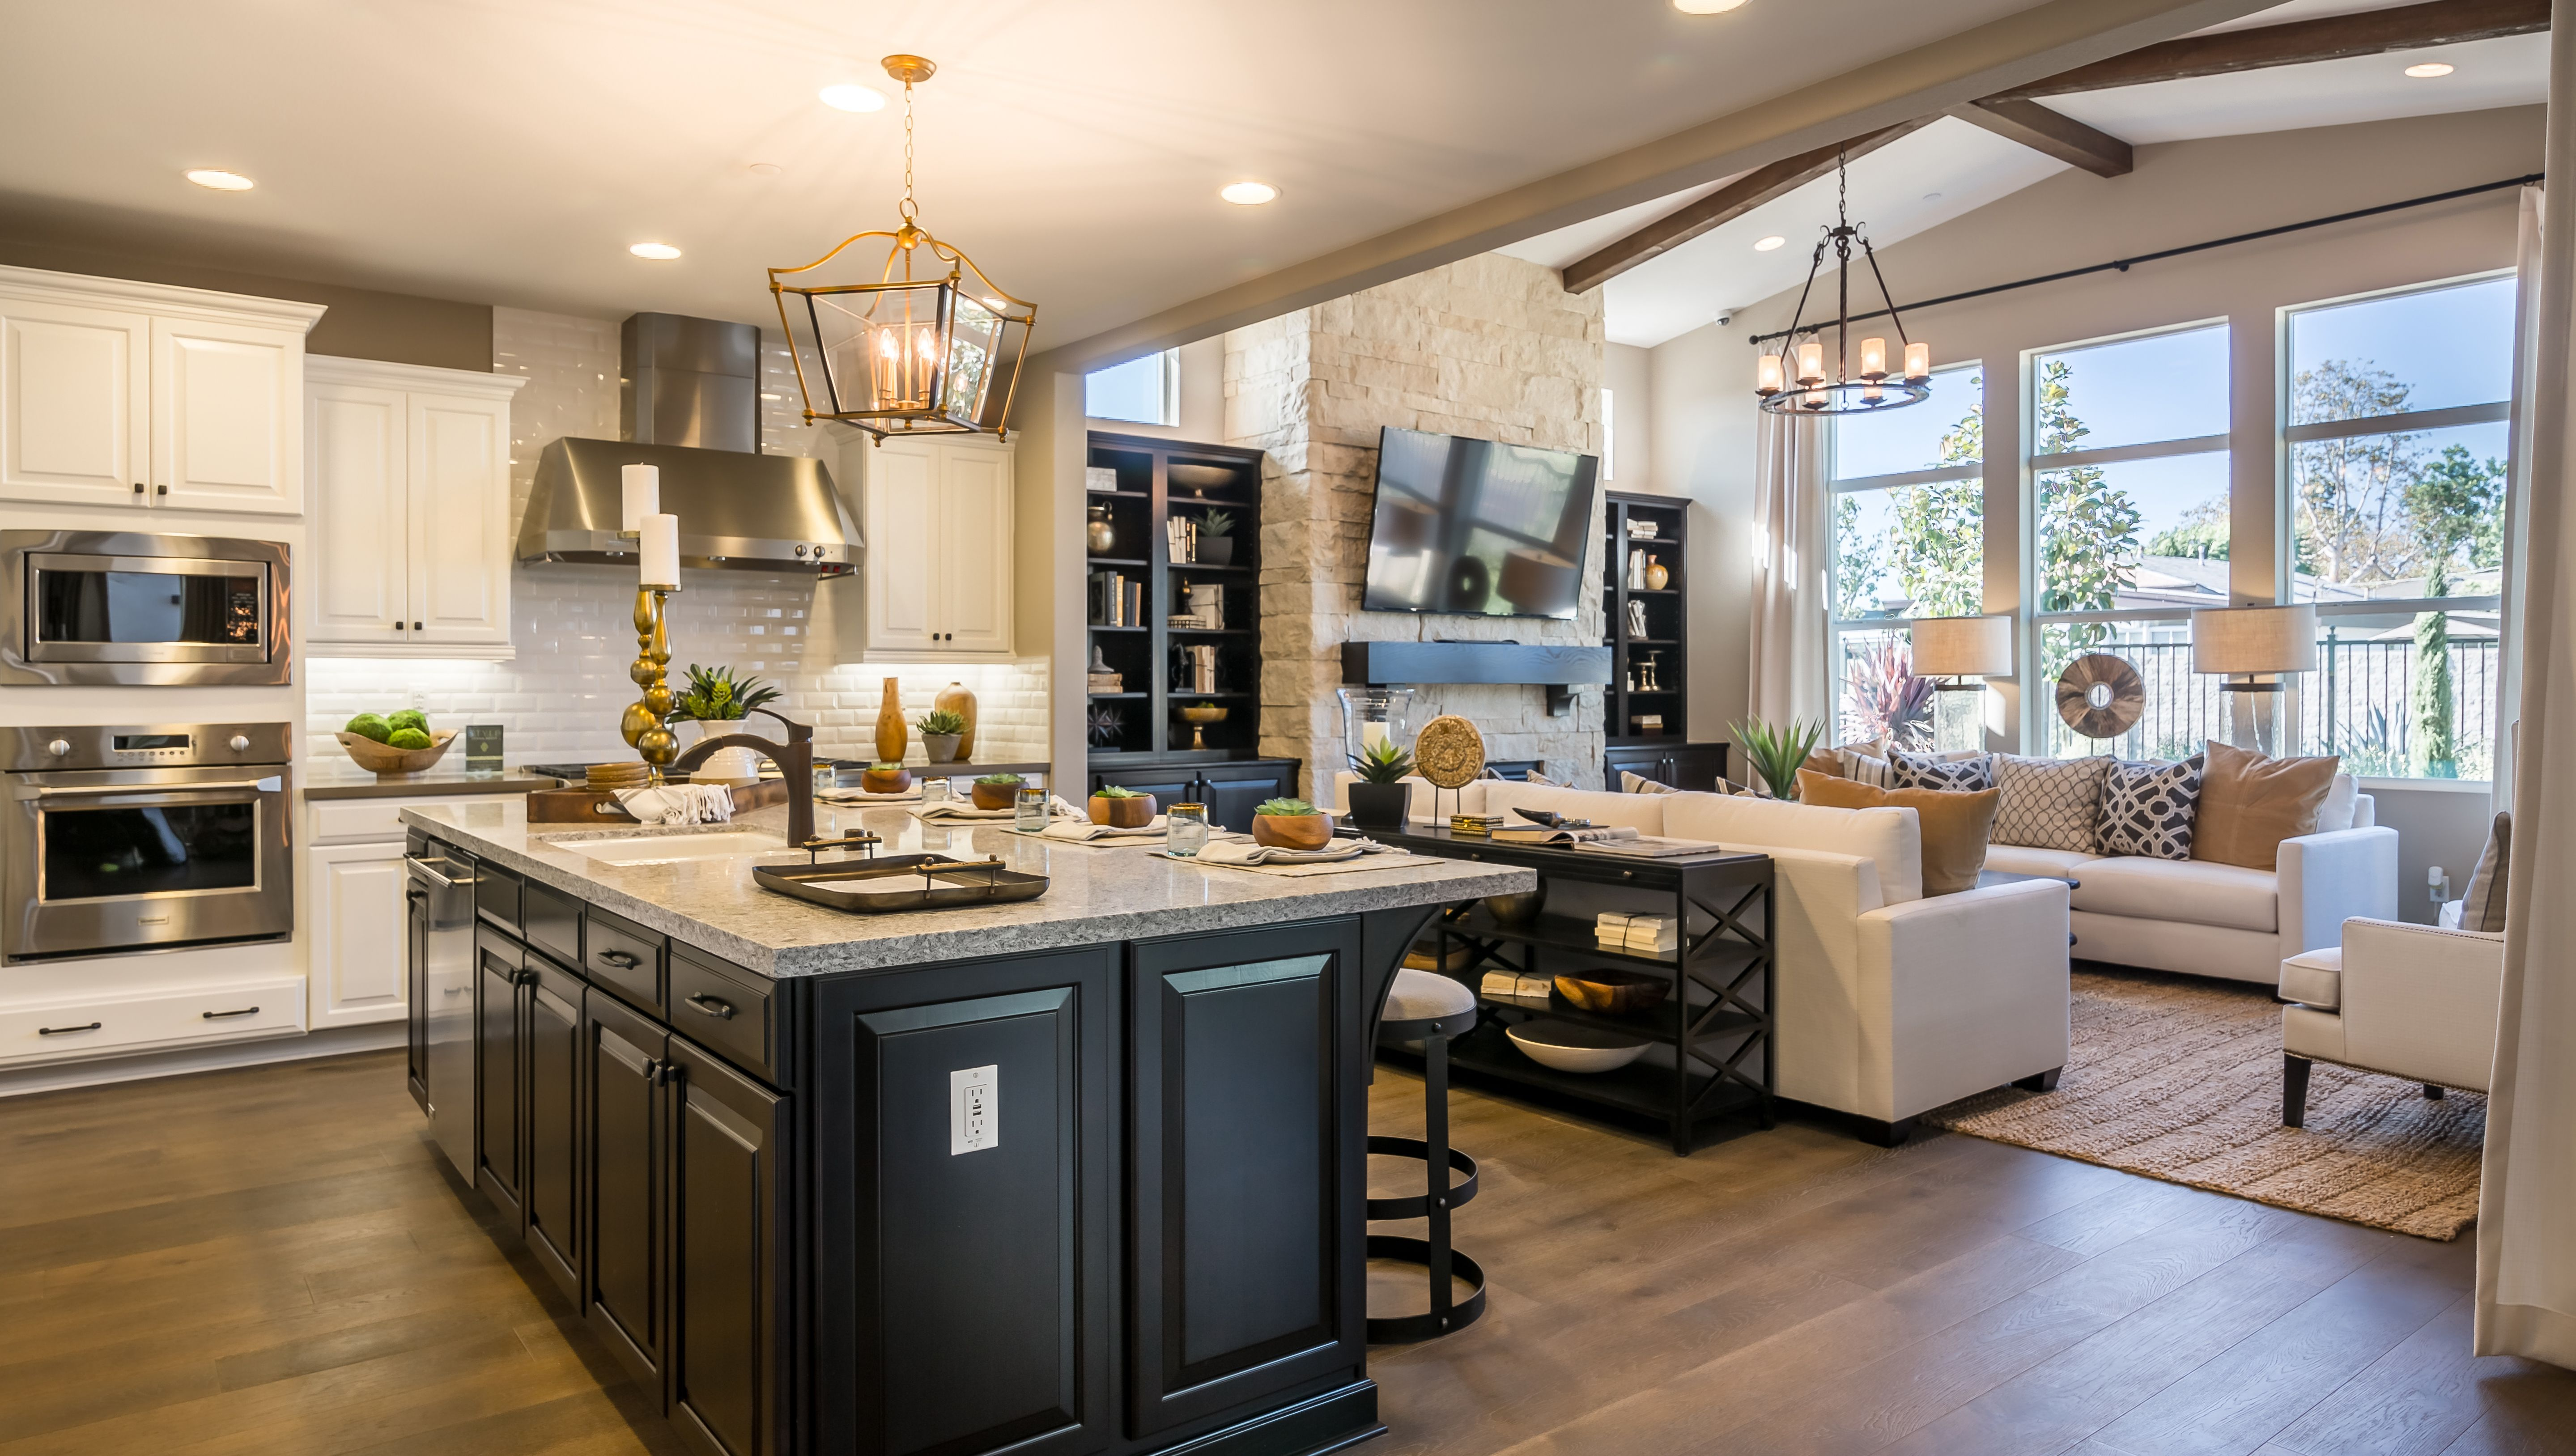 Gorgeous Black White Kitchen Opening Up To The Living Room Los Angeles California Findyourh Open Concept Kitchen Living Room Home Kitchens Kitchen Living